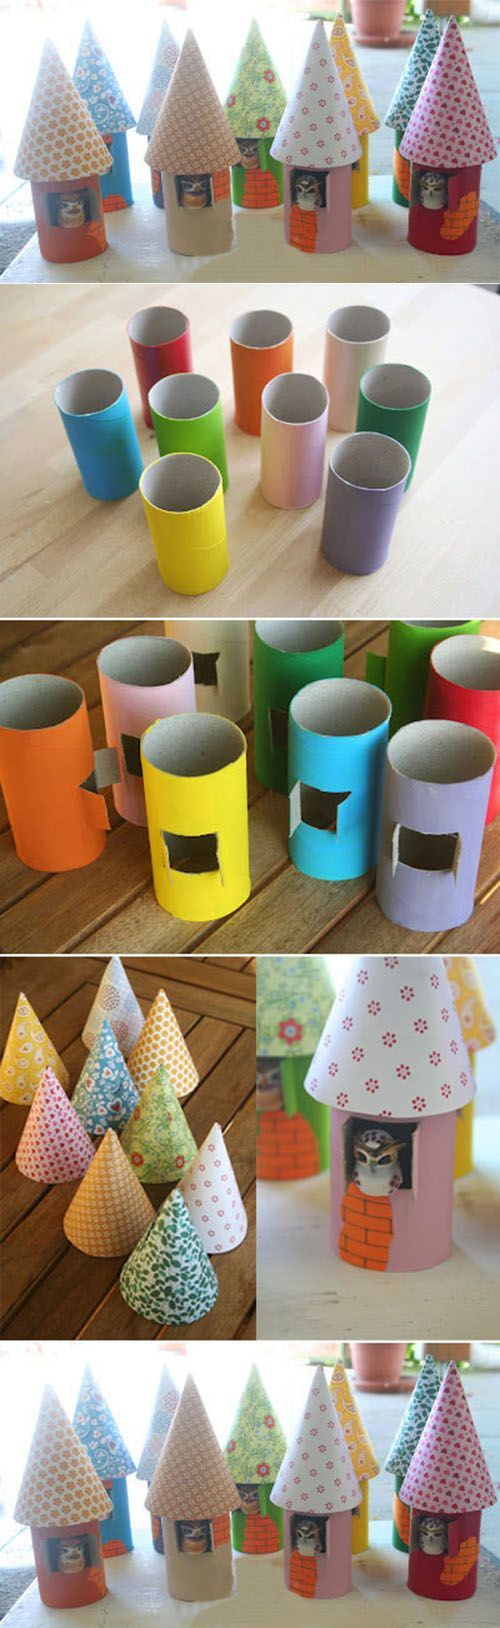 Cute Paper Craft | Best DIY Ideas